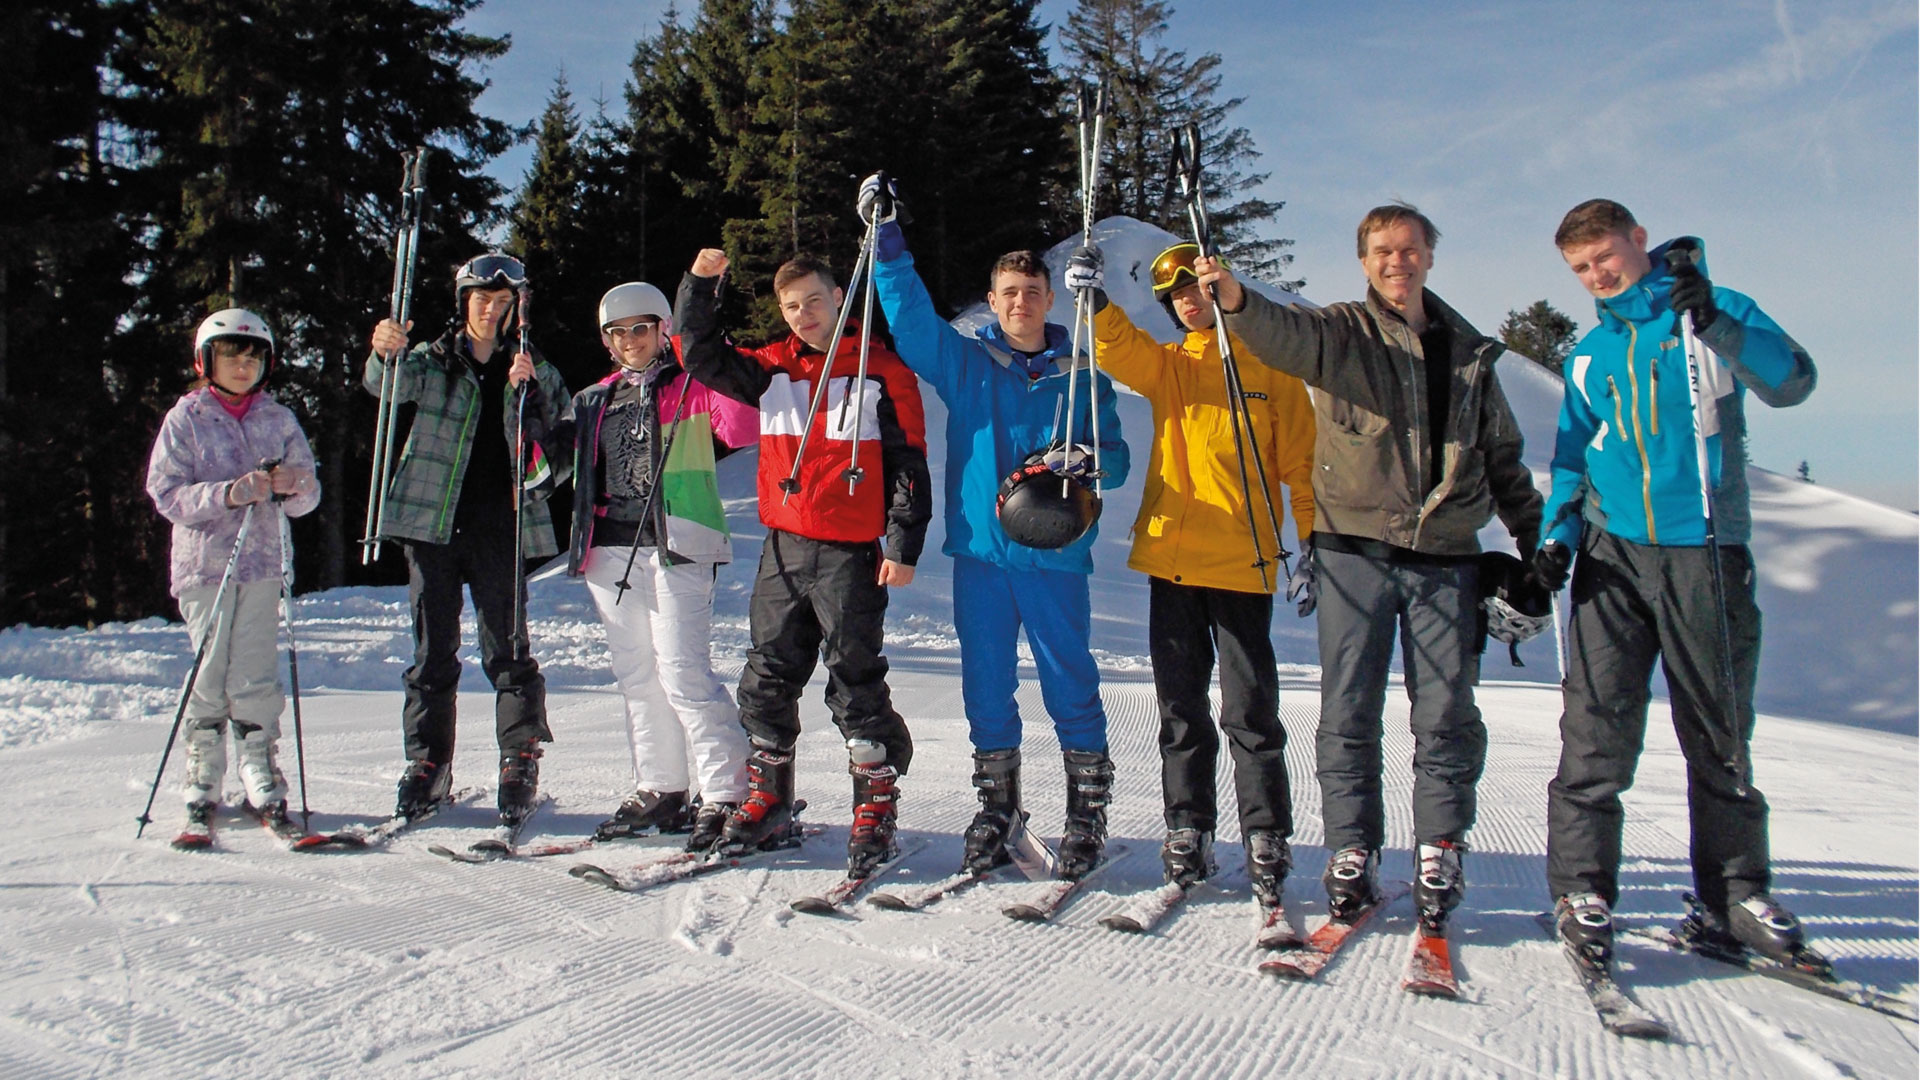 Students on skiing excursion